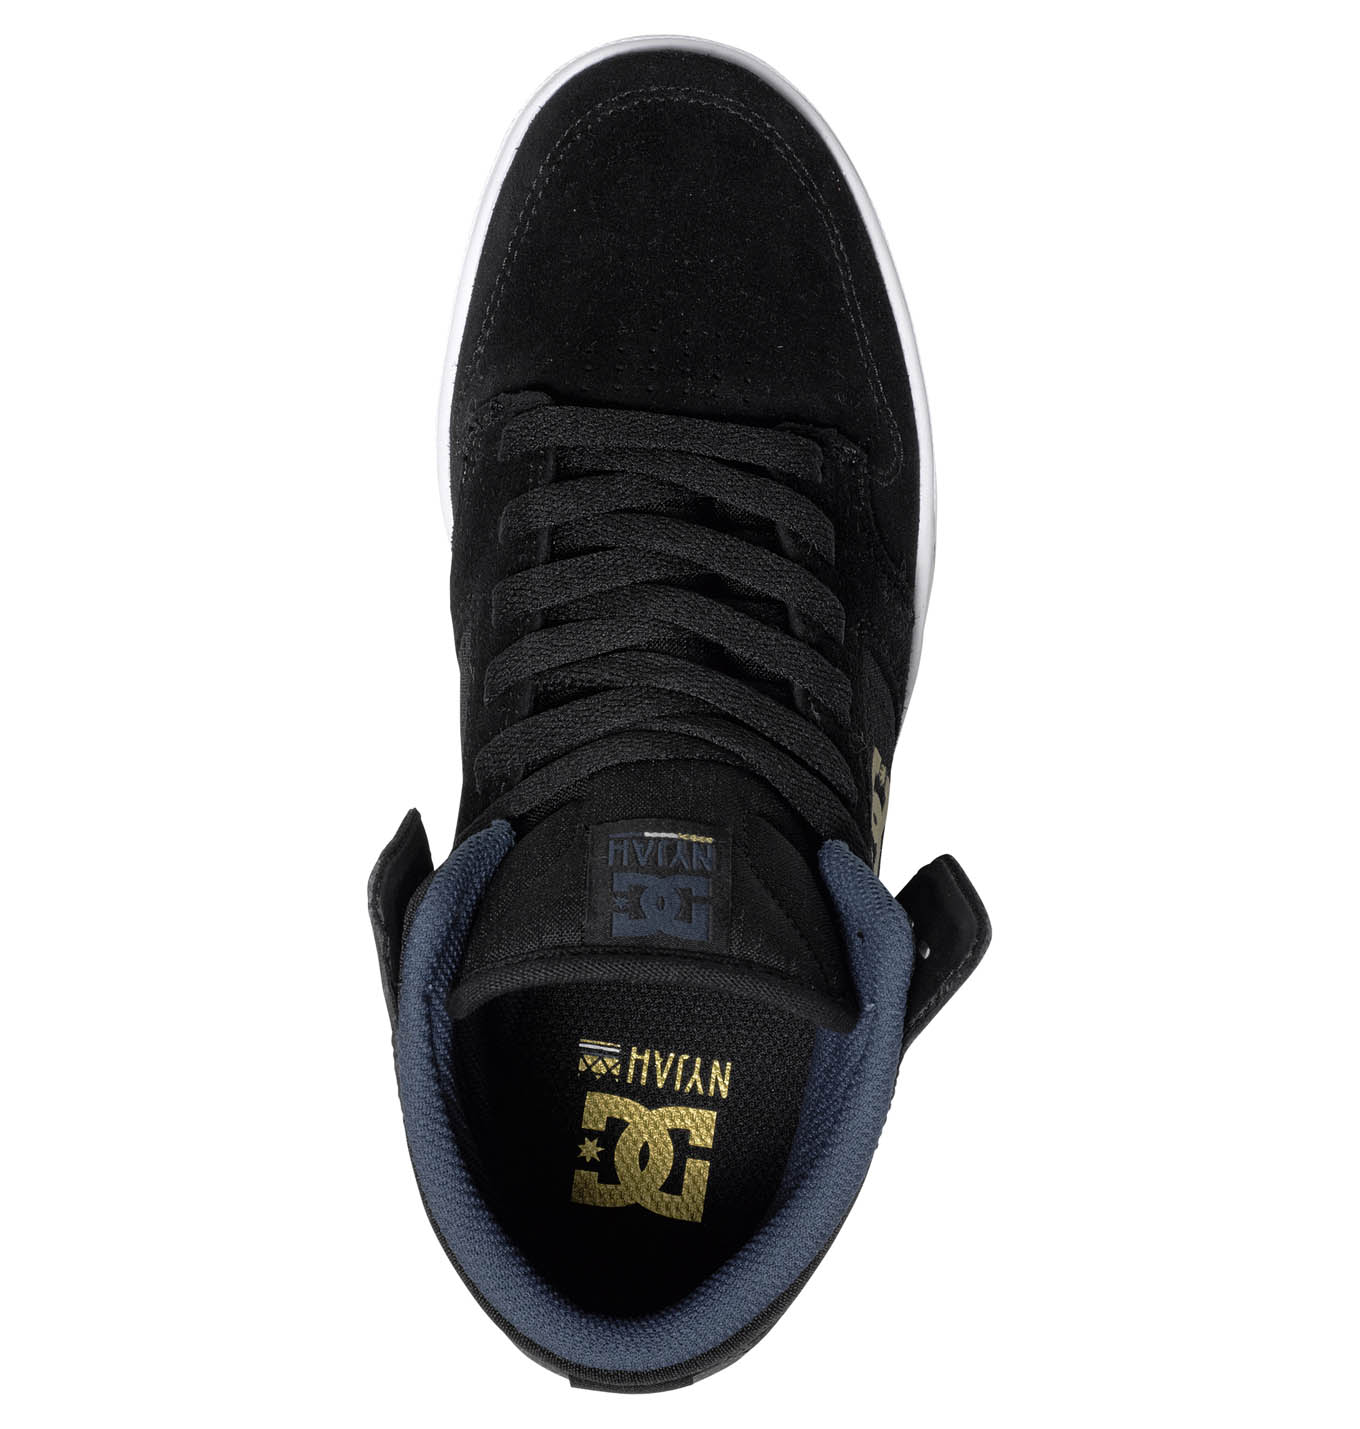 1c42a19cd9cf30 Nyjah High SE W Black DC Shoes   Baskets - Sneakers   Snowleader